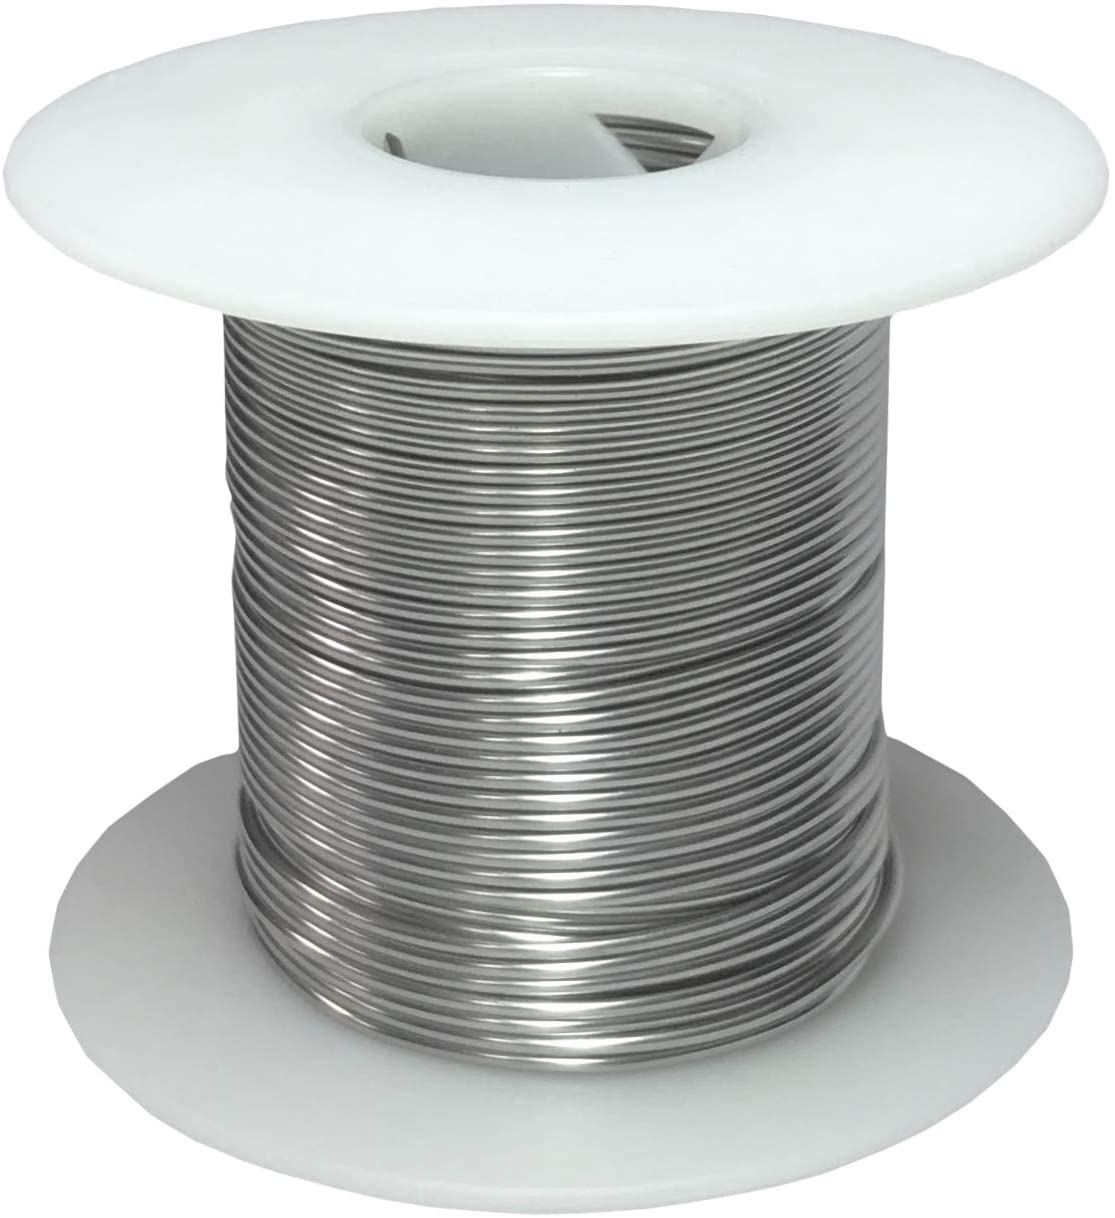 Stainless Steel 316L Wire, 14 AWG Gauge, 0.0640